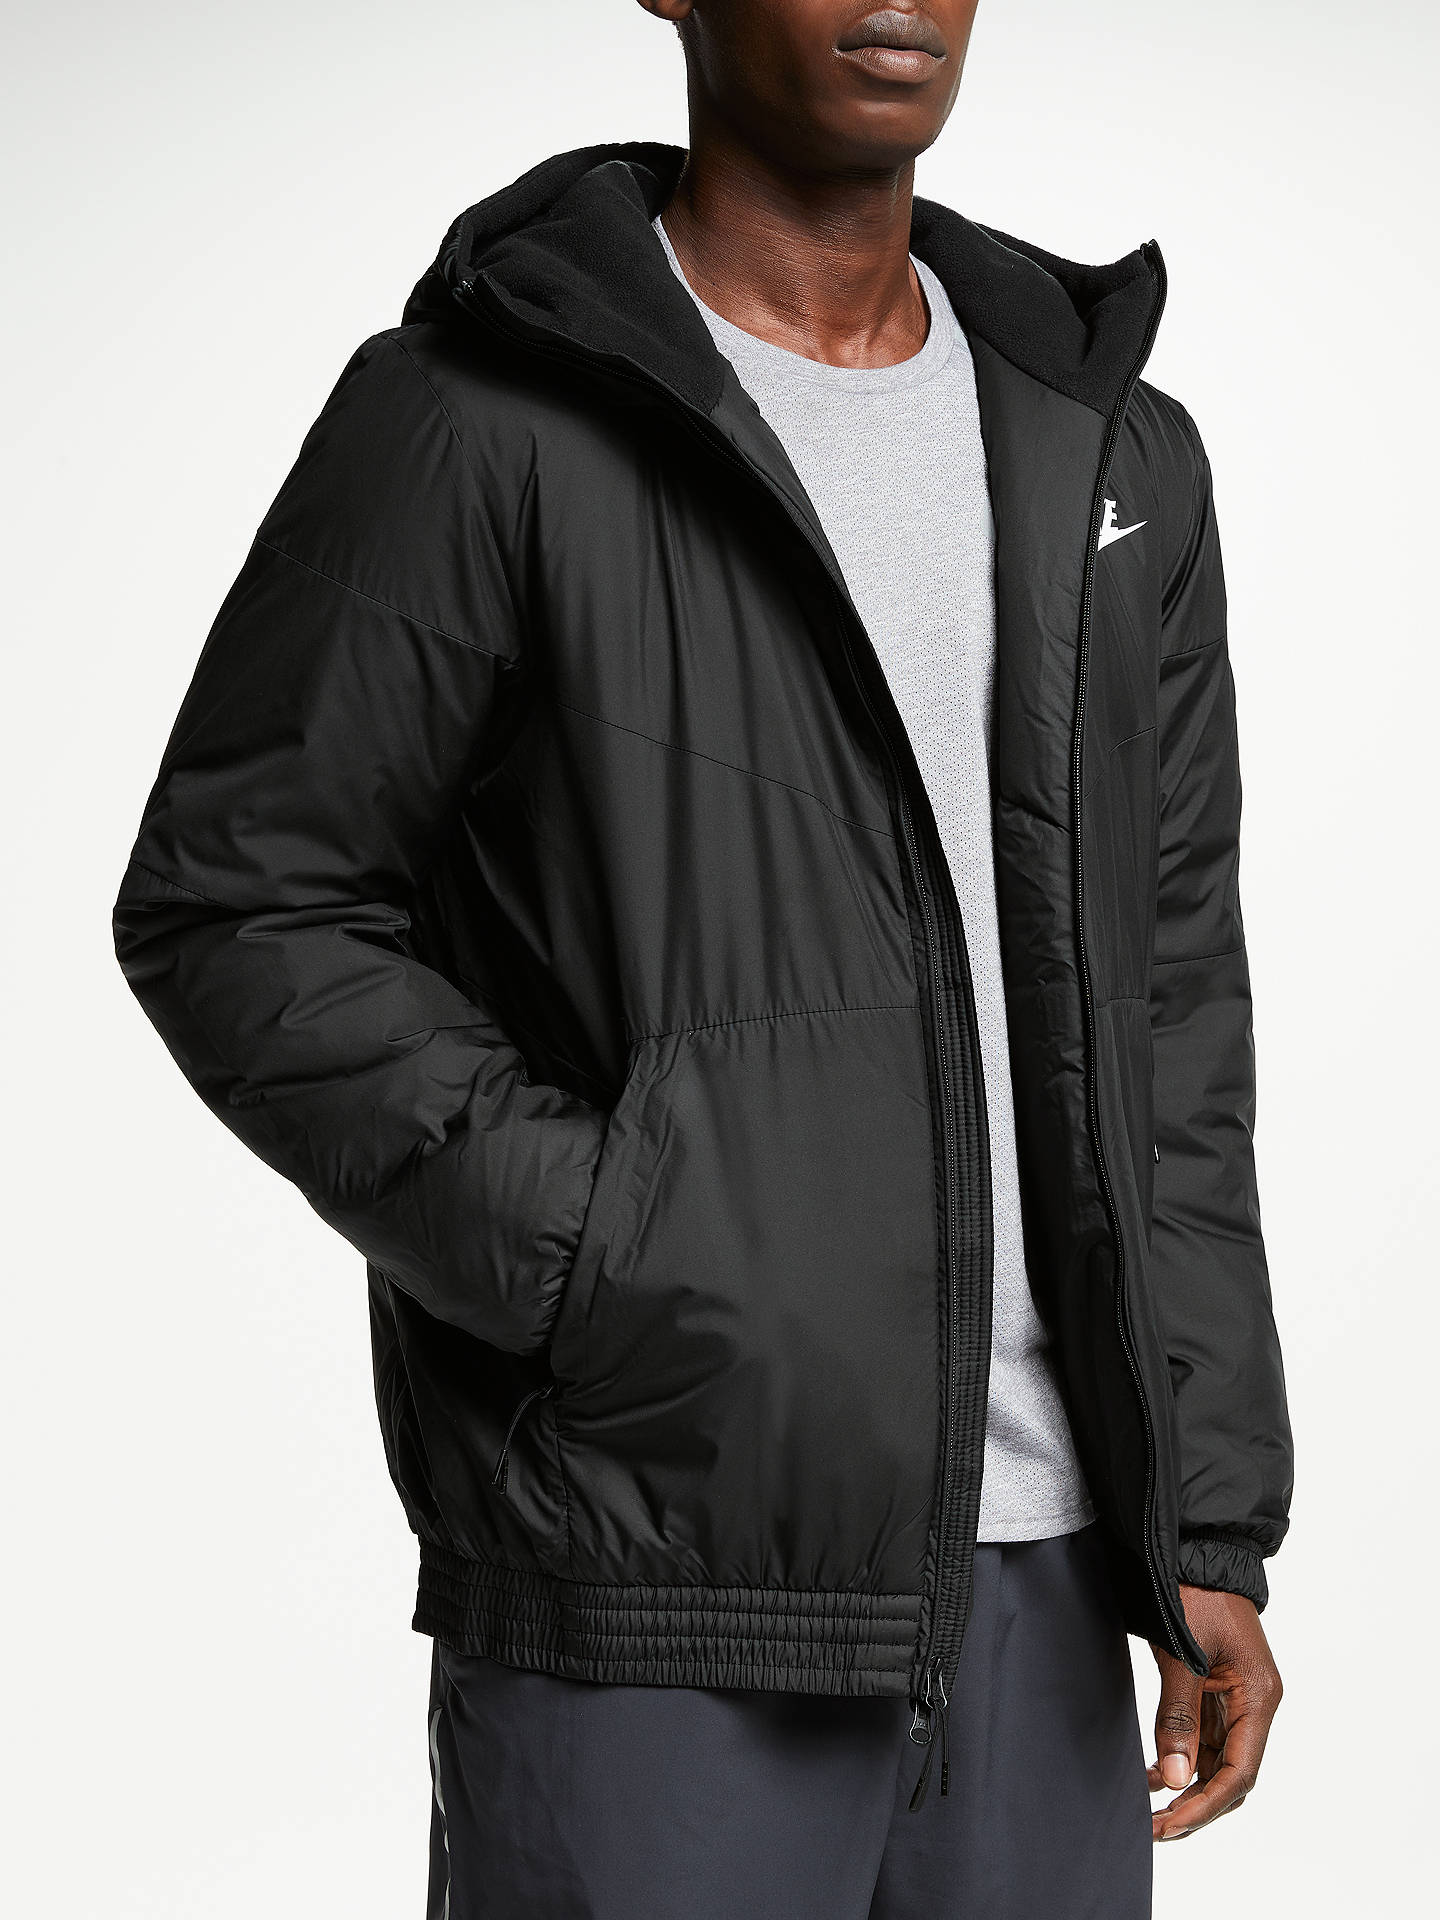 e7ddc7c2e Buy Nike Synthetic Fill Jacket, Black, M Online at johnlewis.com ...